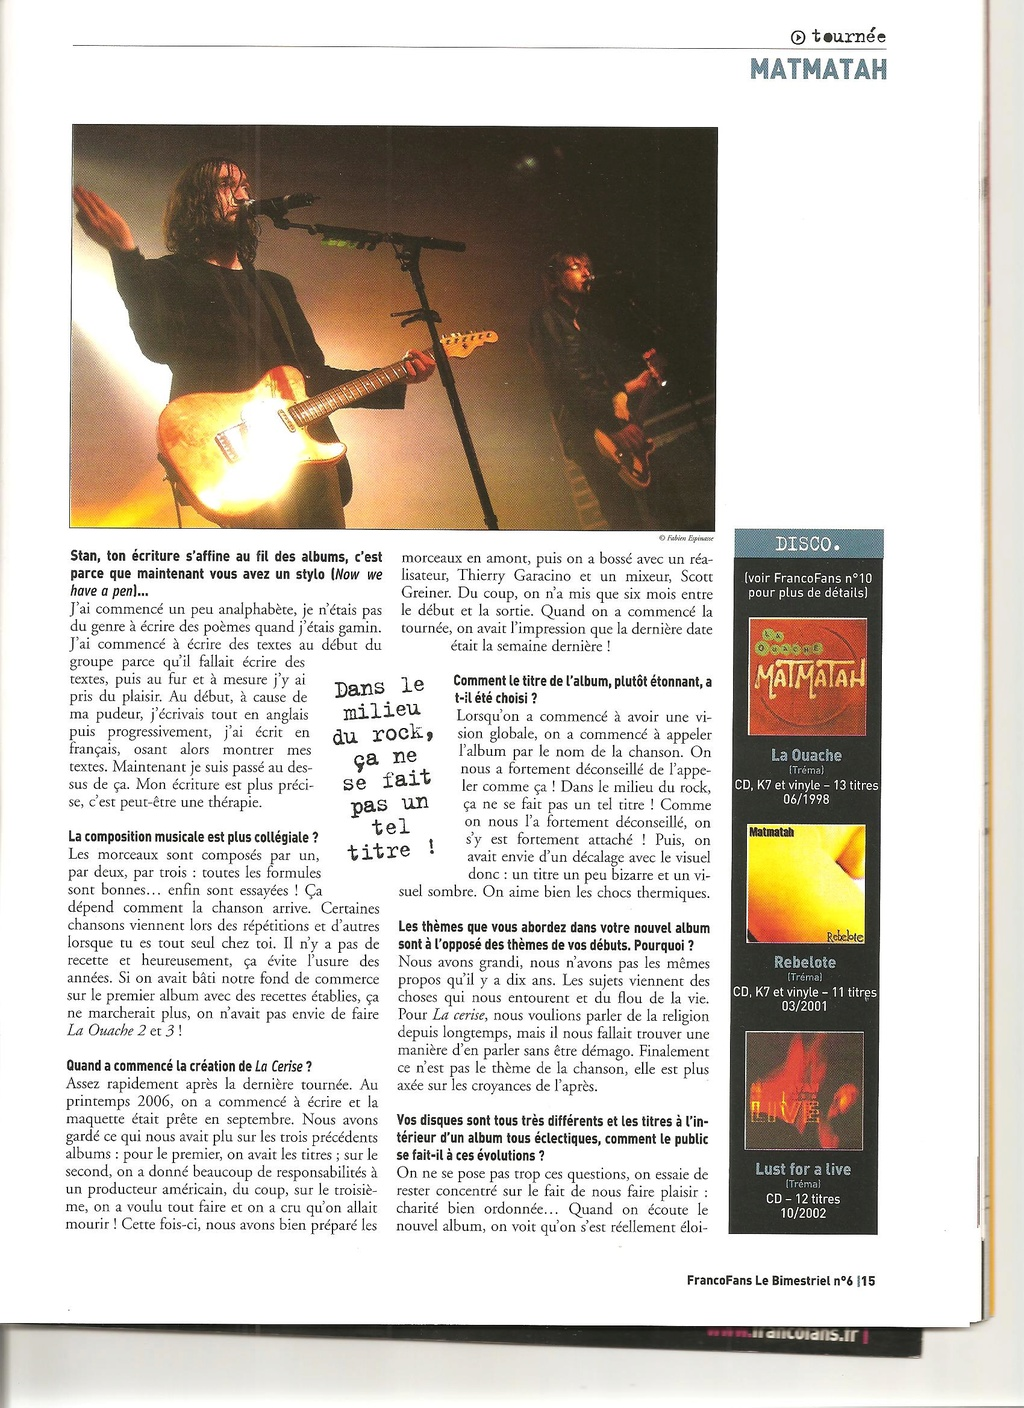 Archives - anciens articles... Franco25